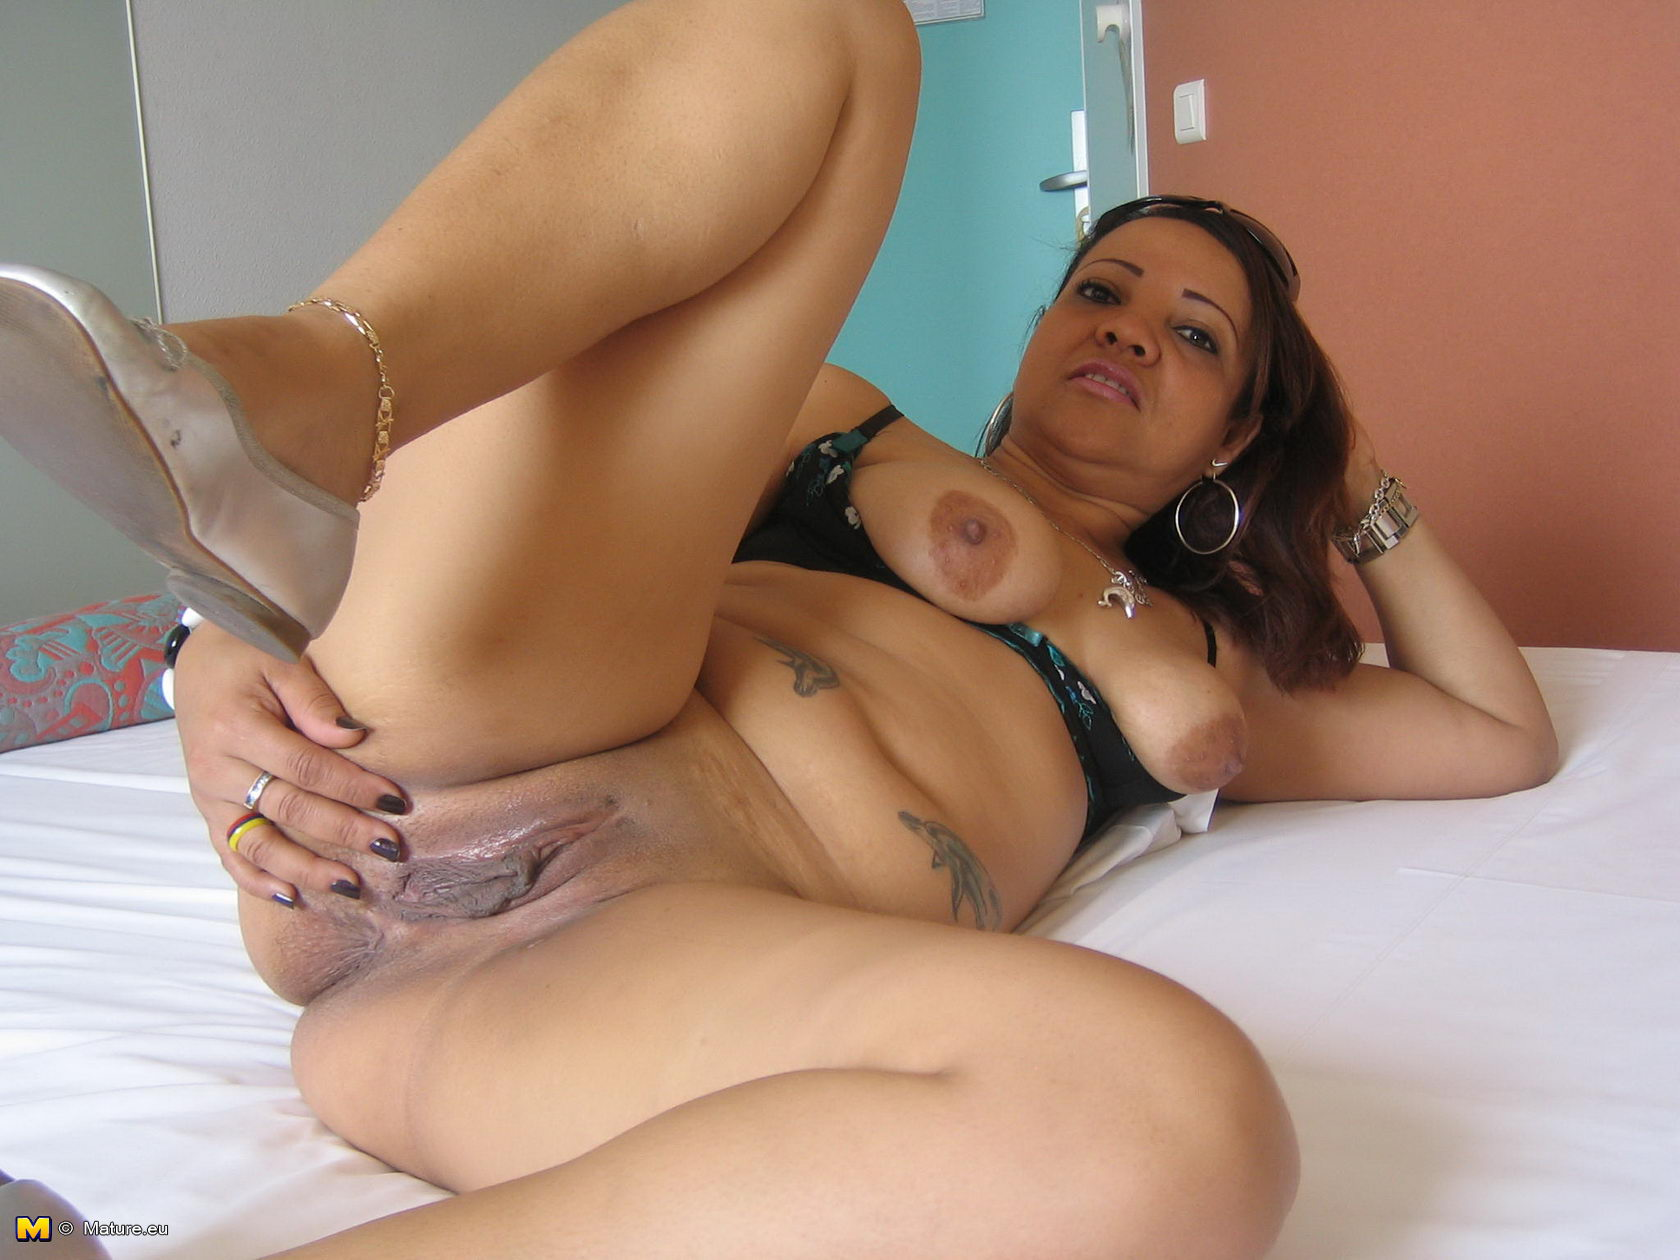 Amateur mom loves her dildo and shows off her dancing skills 1